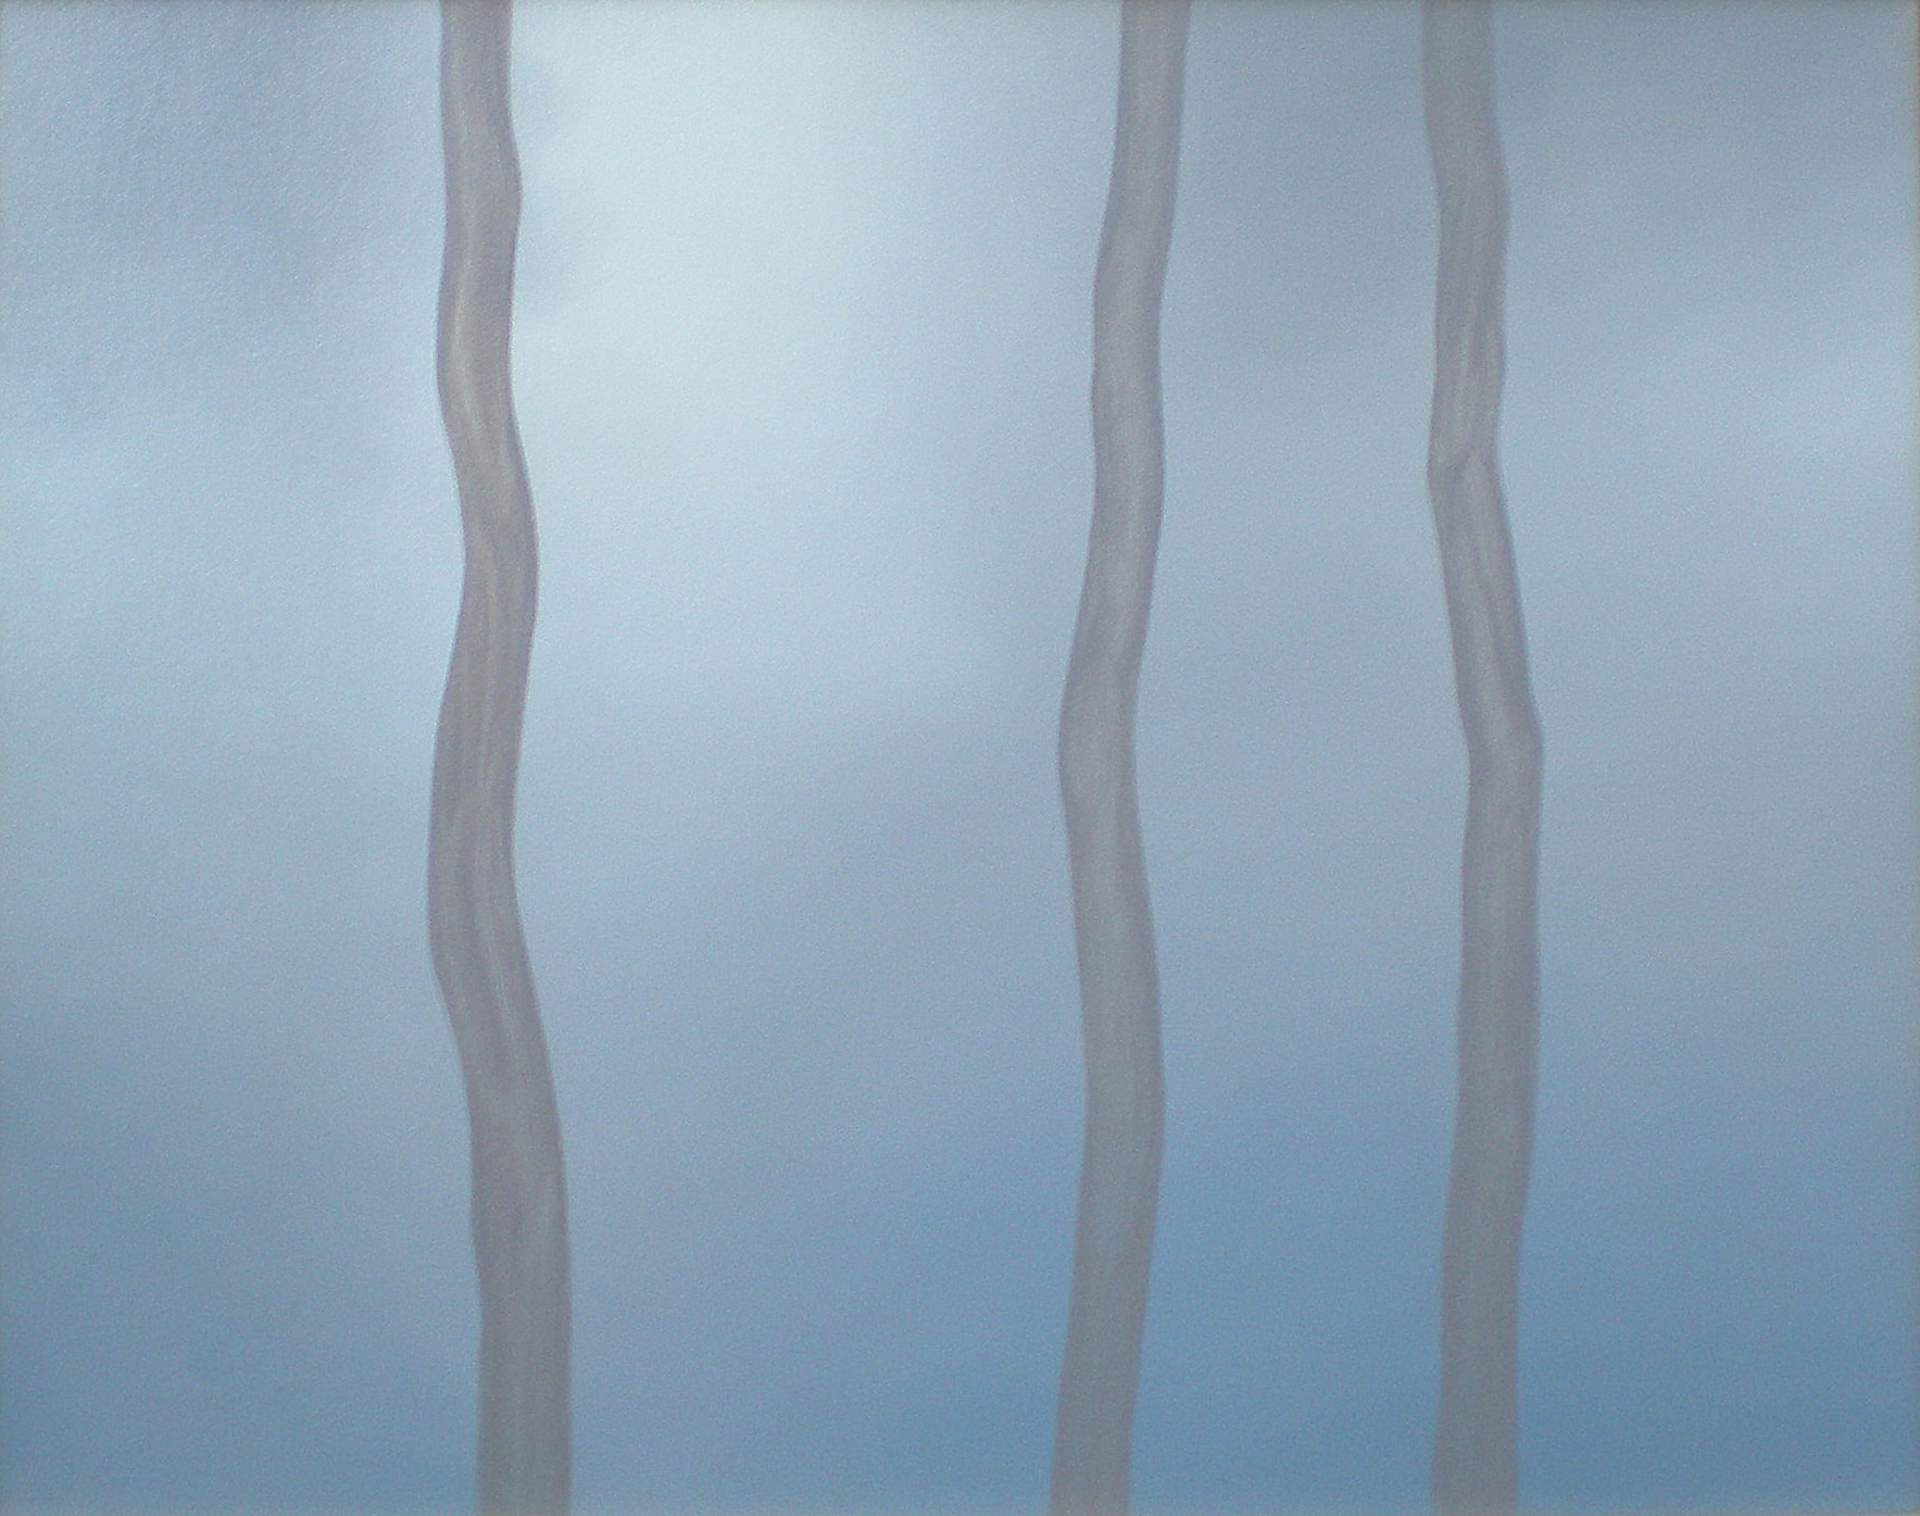 Untitled IV (Lakeview Series) by William Wahlgren